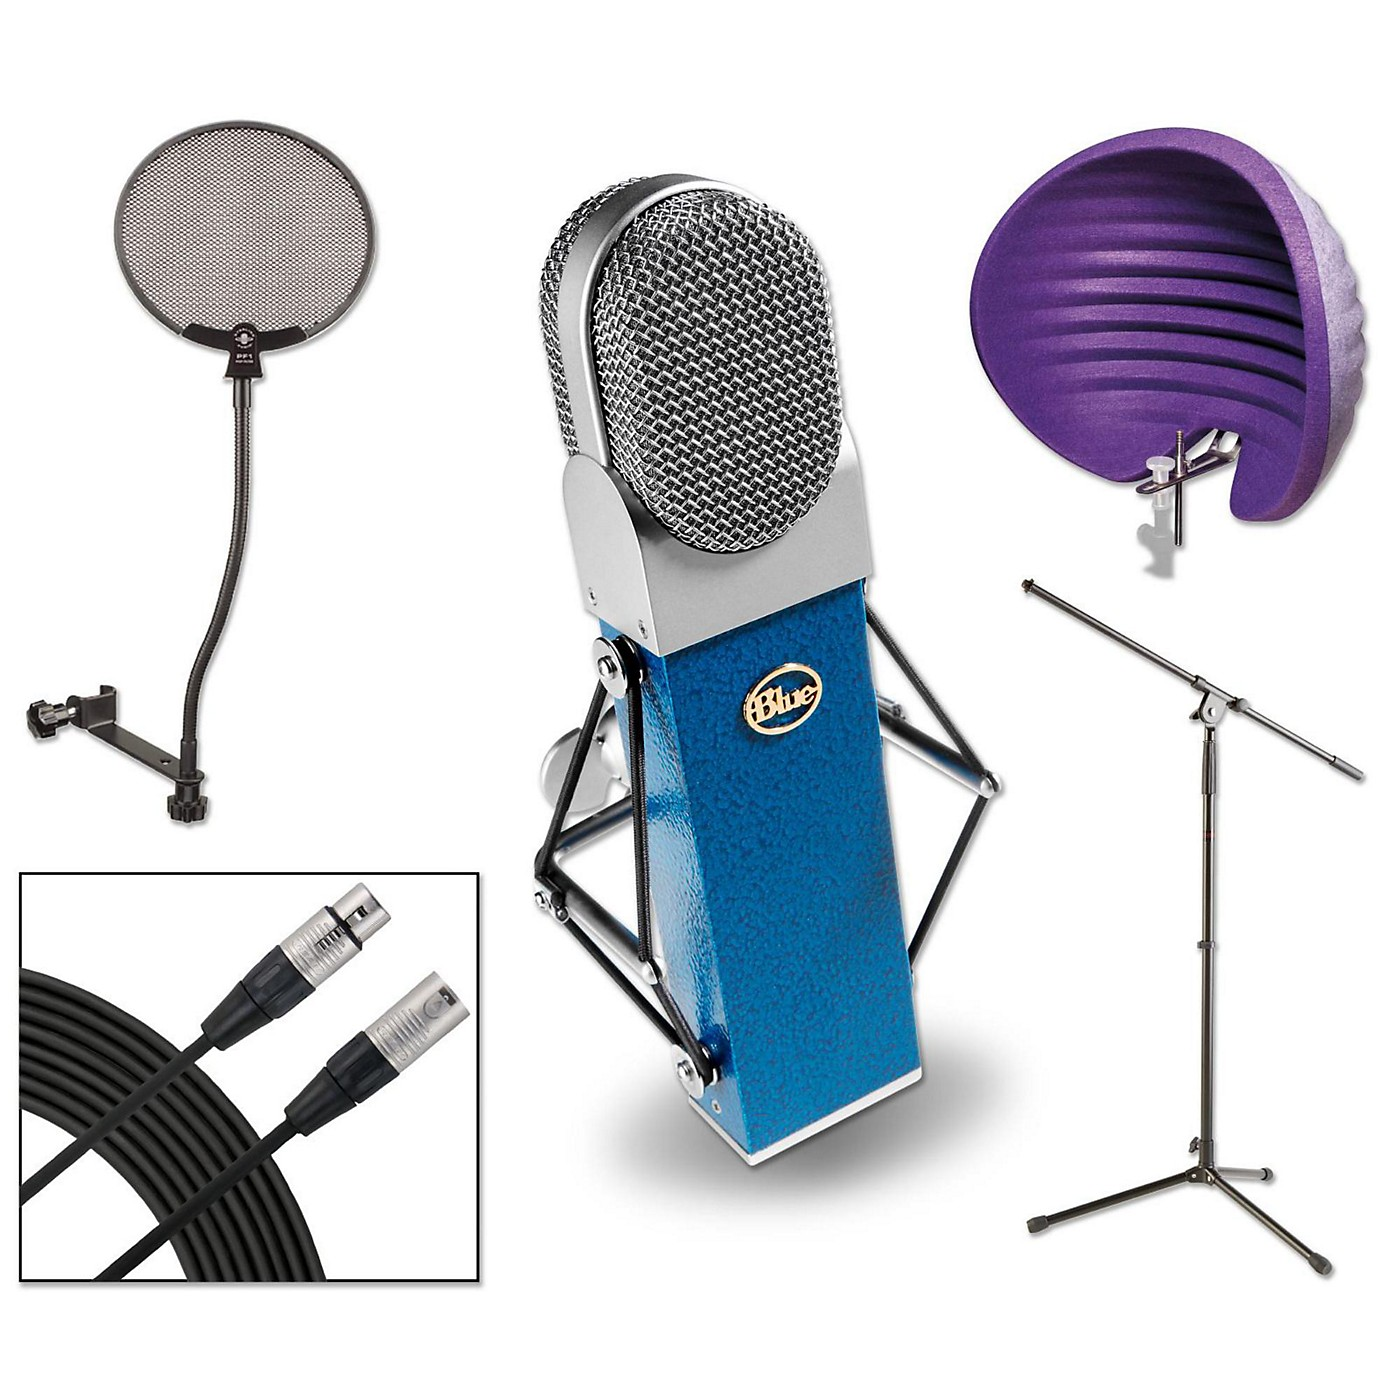 BLUE Blueberry HALO Vocal Shield Stand 2 Pack Pop Filter and Cable Kit thumbnail